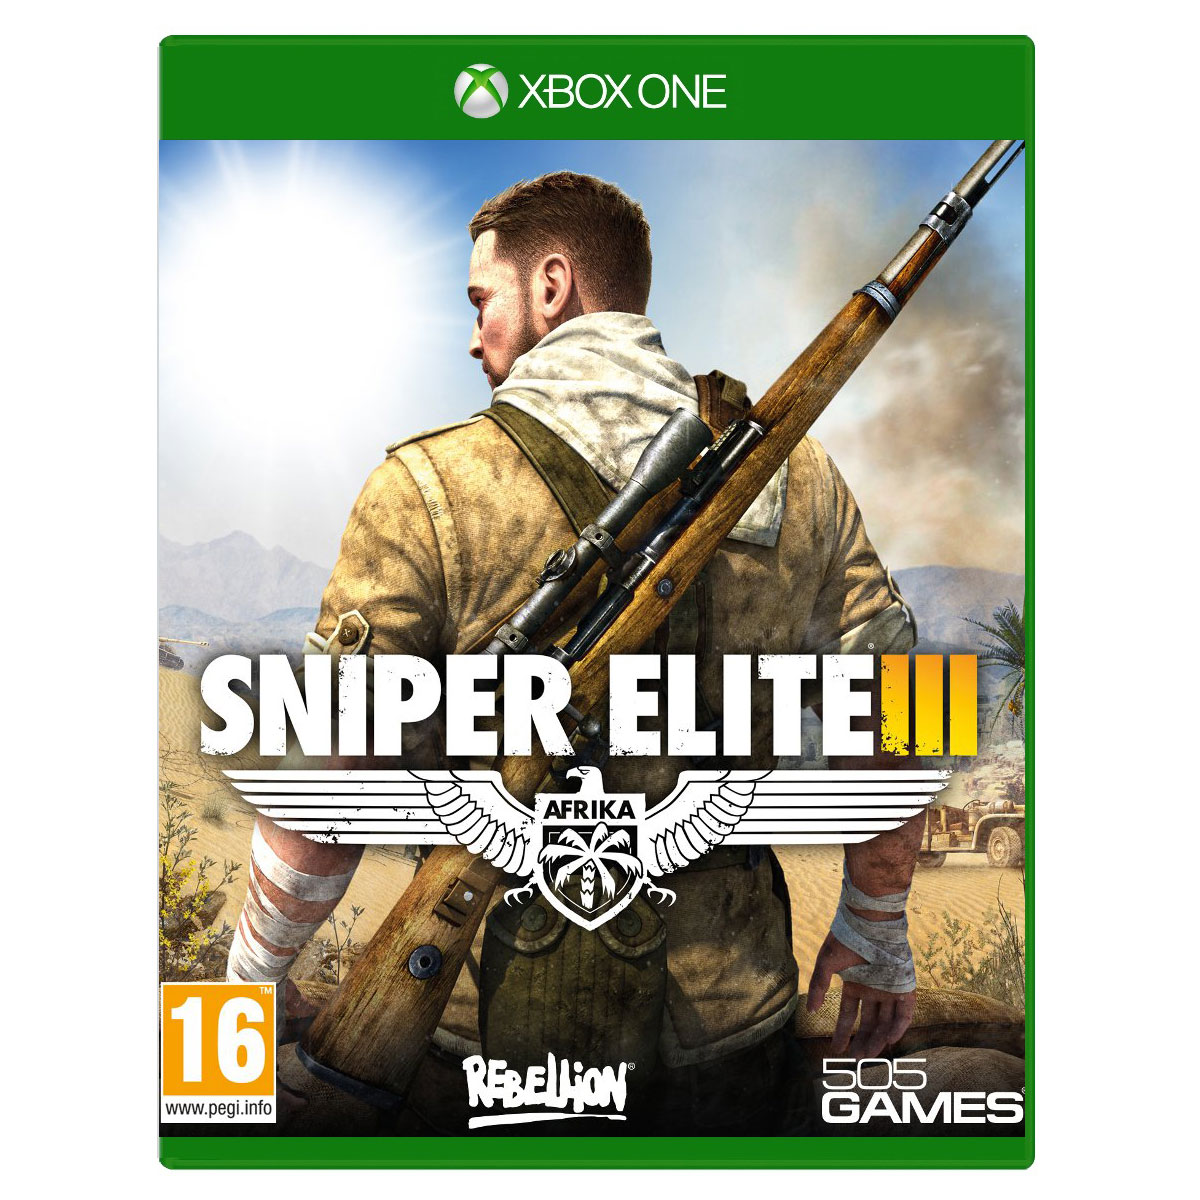 sniper elite iii xbox one dl00423 achat vente jeux. Black Bedroom Furniture Sets. Home Design Ideas